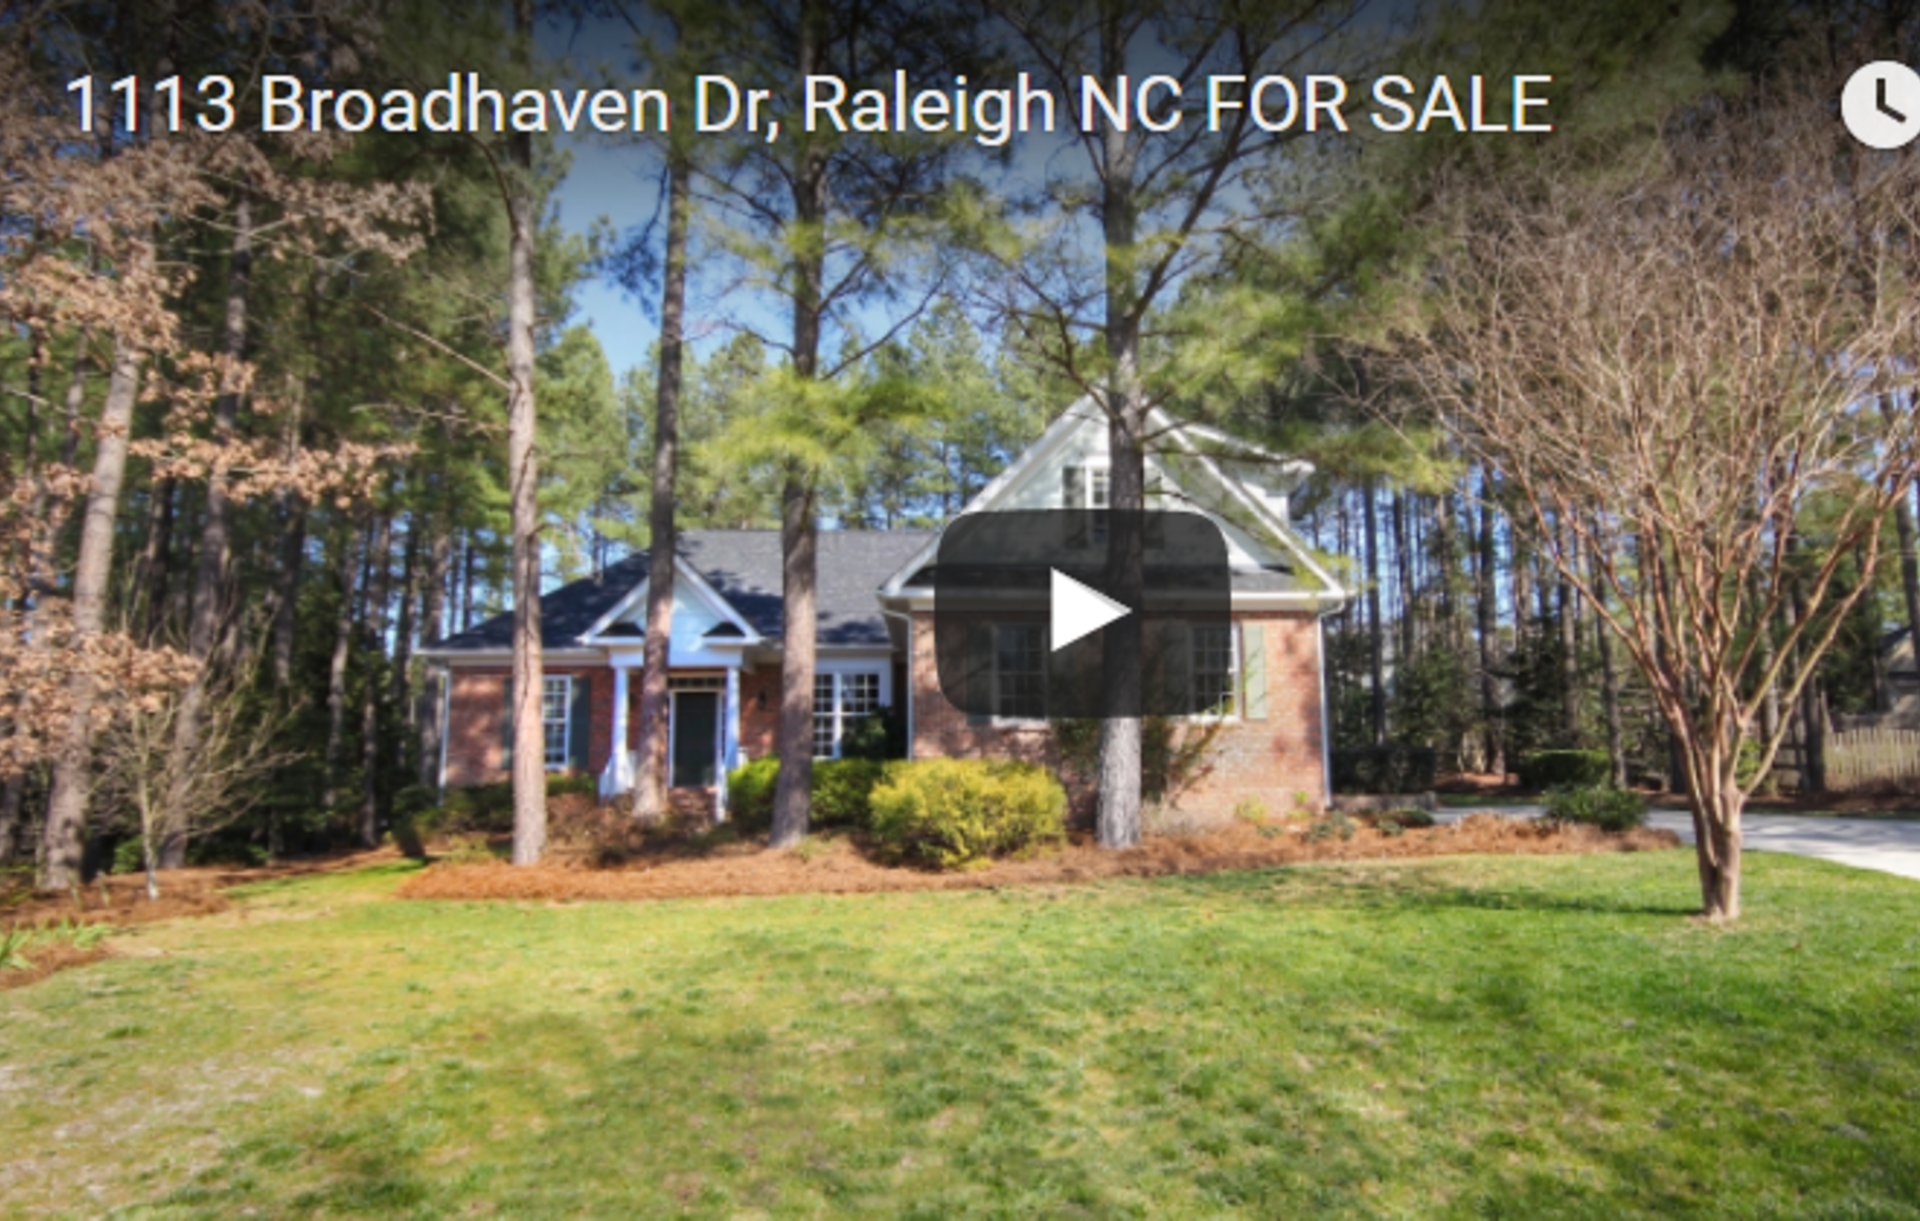 1113 Broadhaven Dr Raleigh NC for Sale!